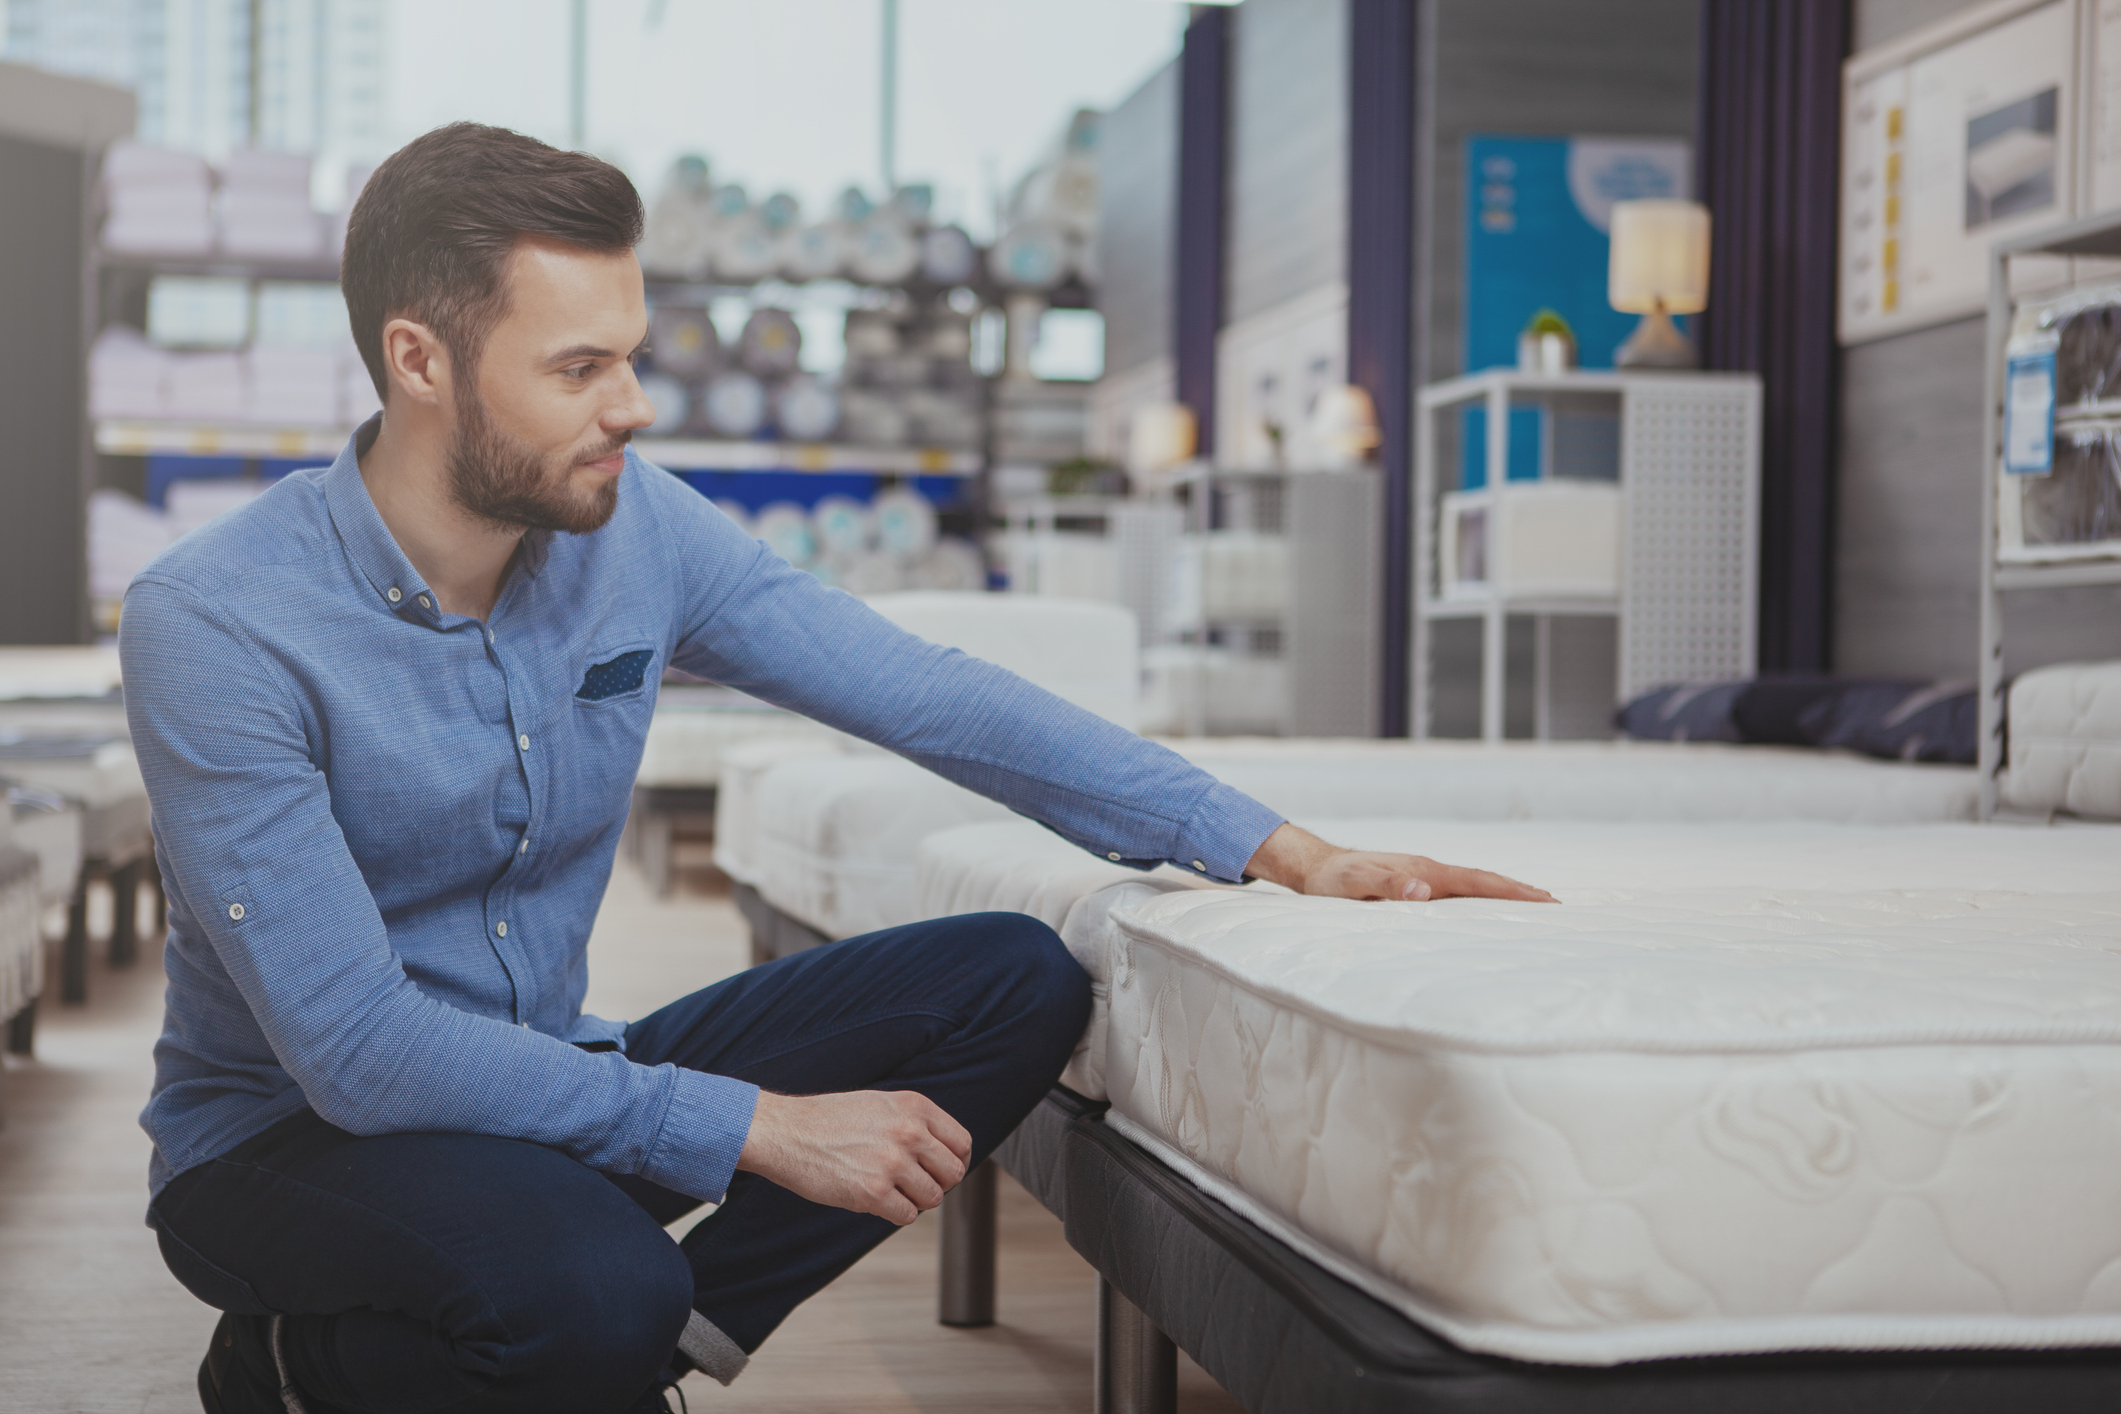 man testing out a mattress in a store